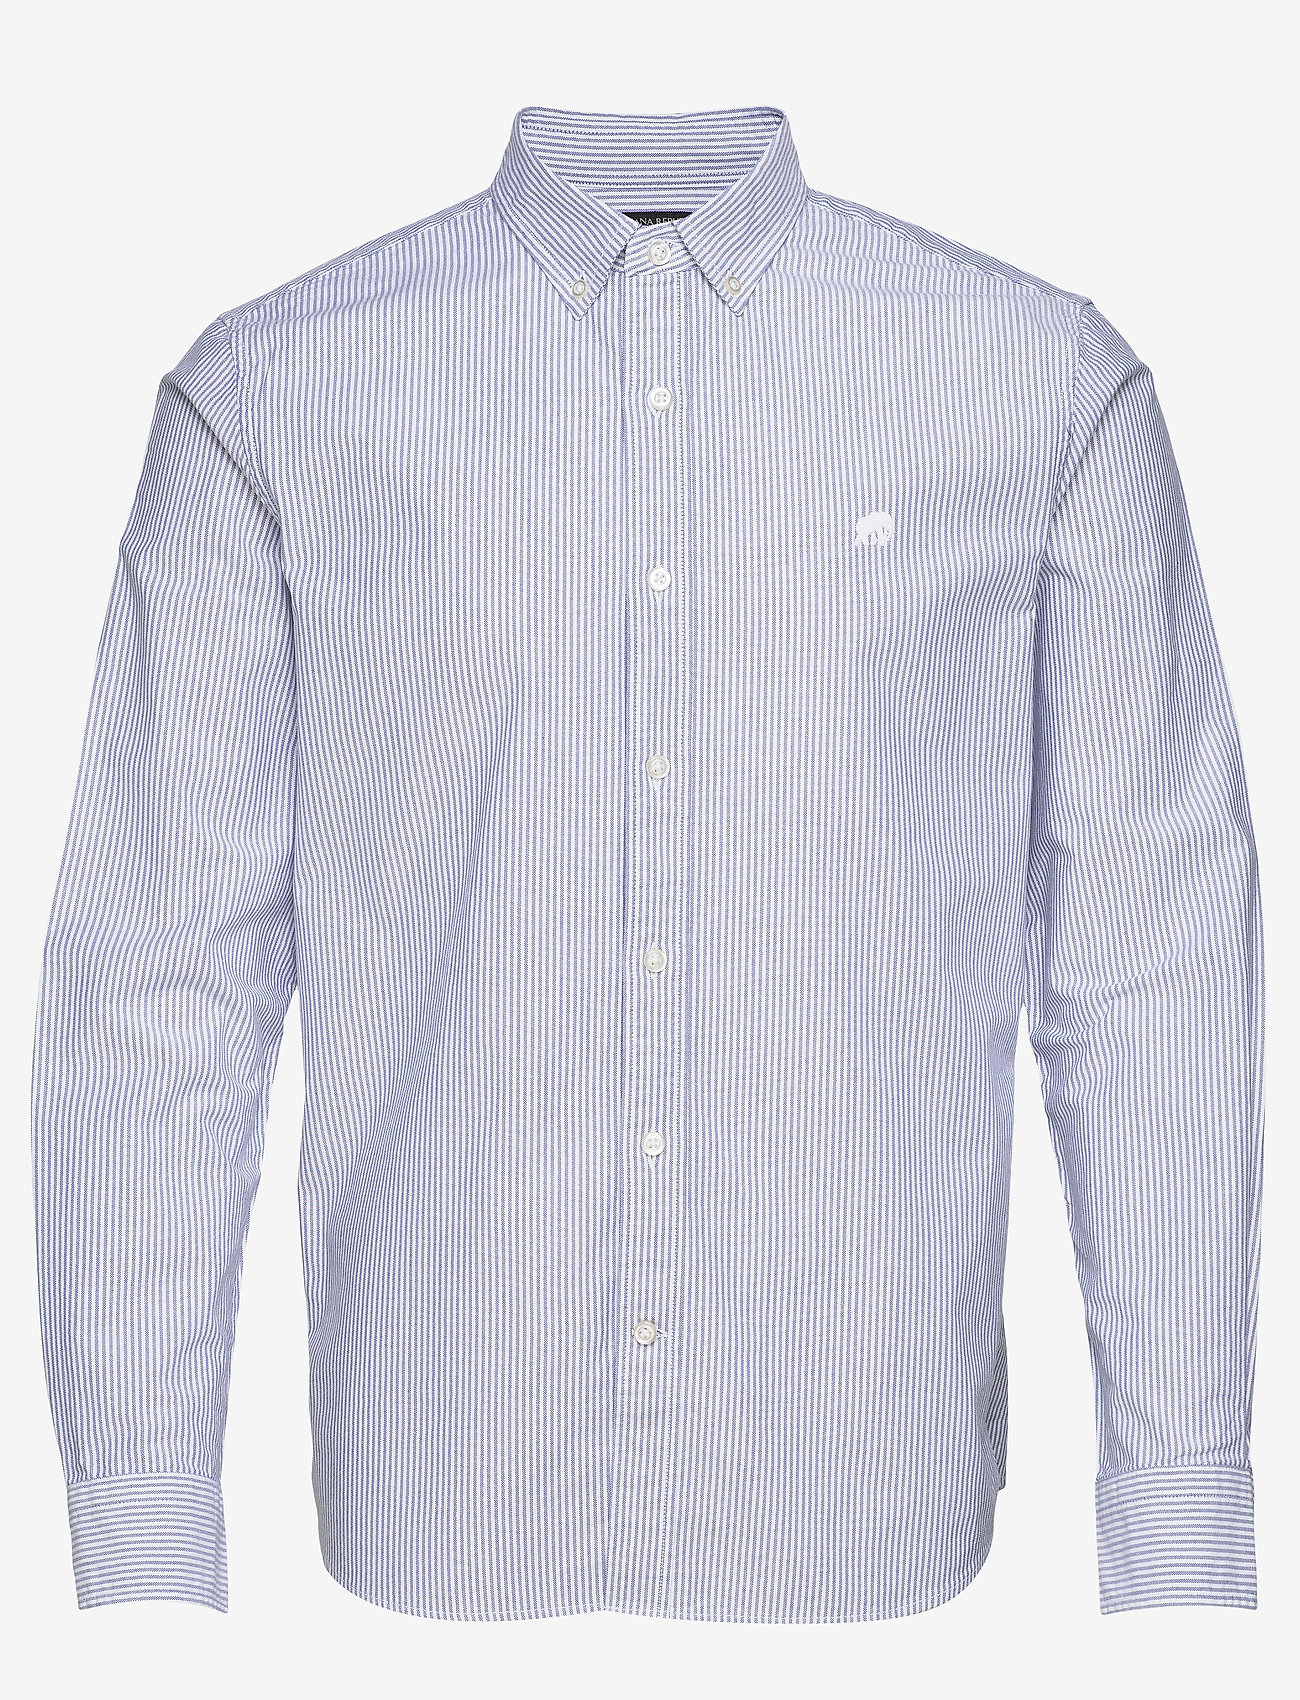 Banana Republic - I UT LOGO OXFORD STRIPE - oxford shirts - blue violet - 0